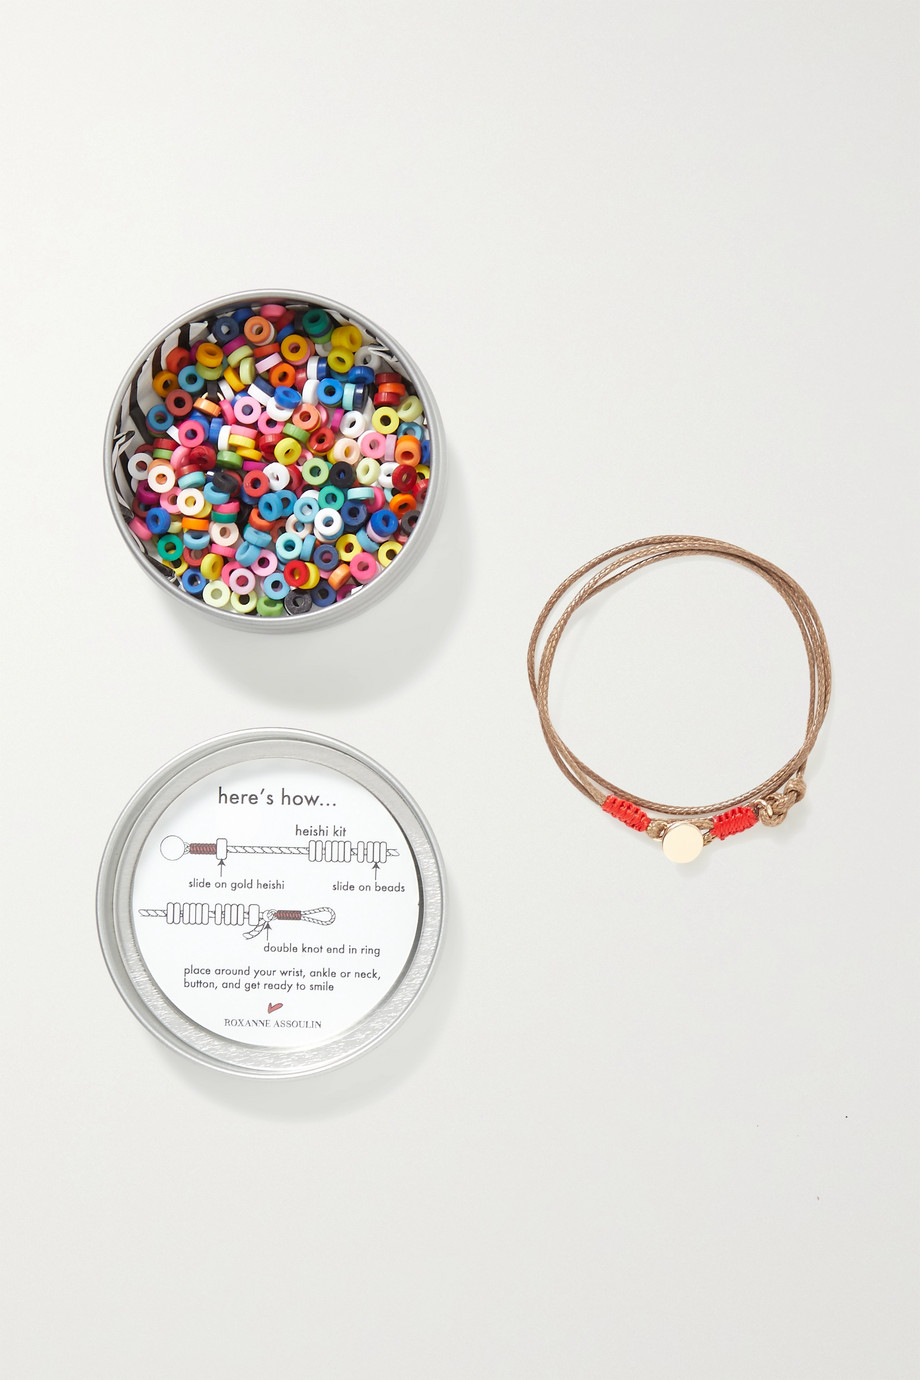 Roxanne Assoulin Heishi DIY cord, enamel and gold-tone necklace kit